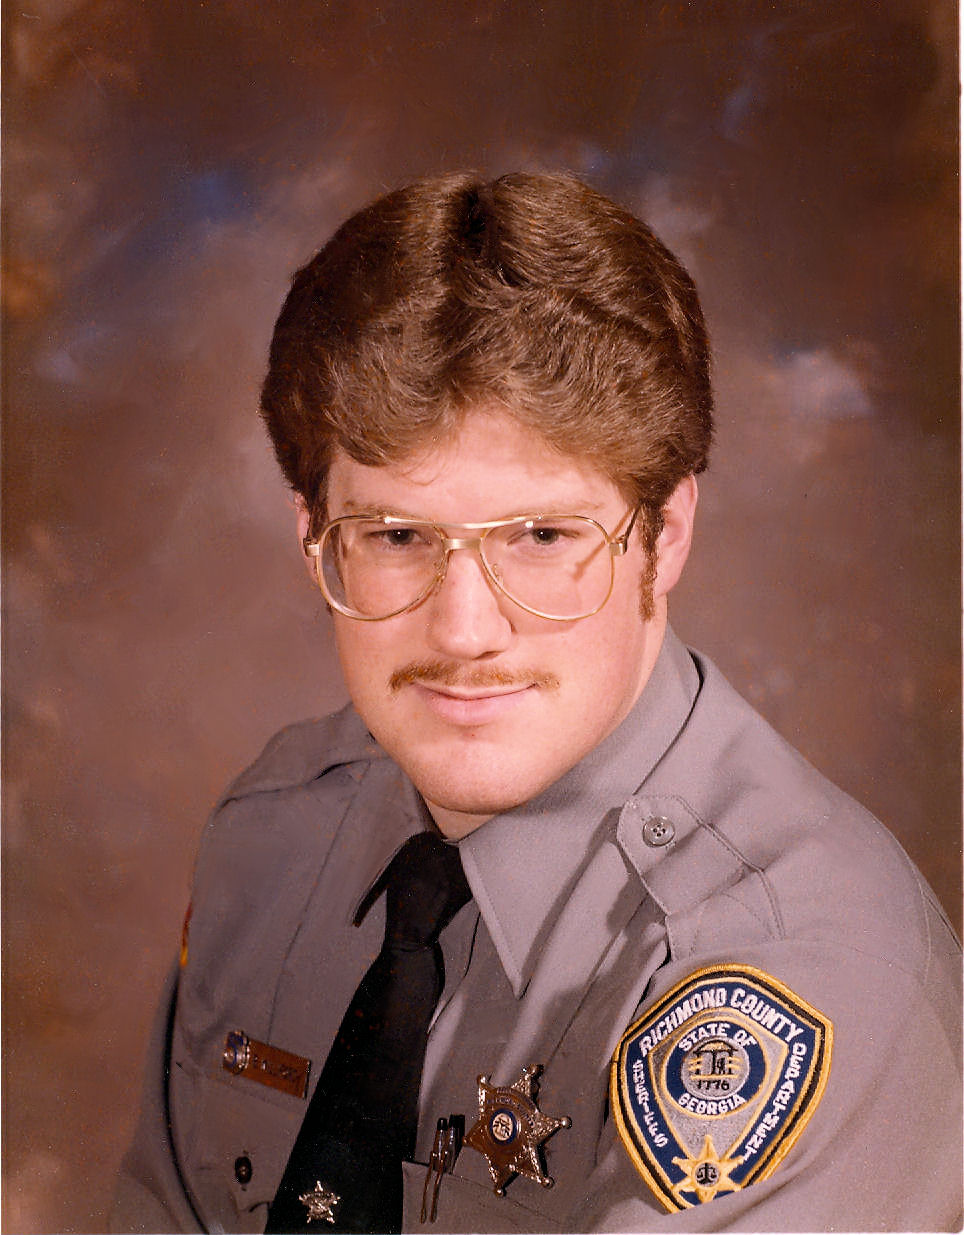 Deputy Sheriff Bruce Williford | Richmond County Sheriff's Office, Georgia